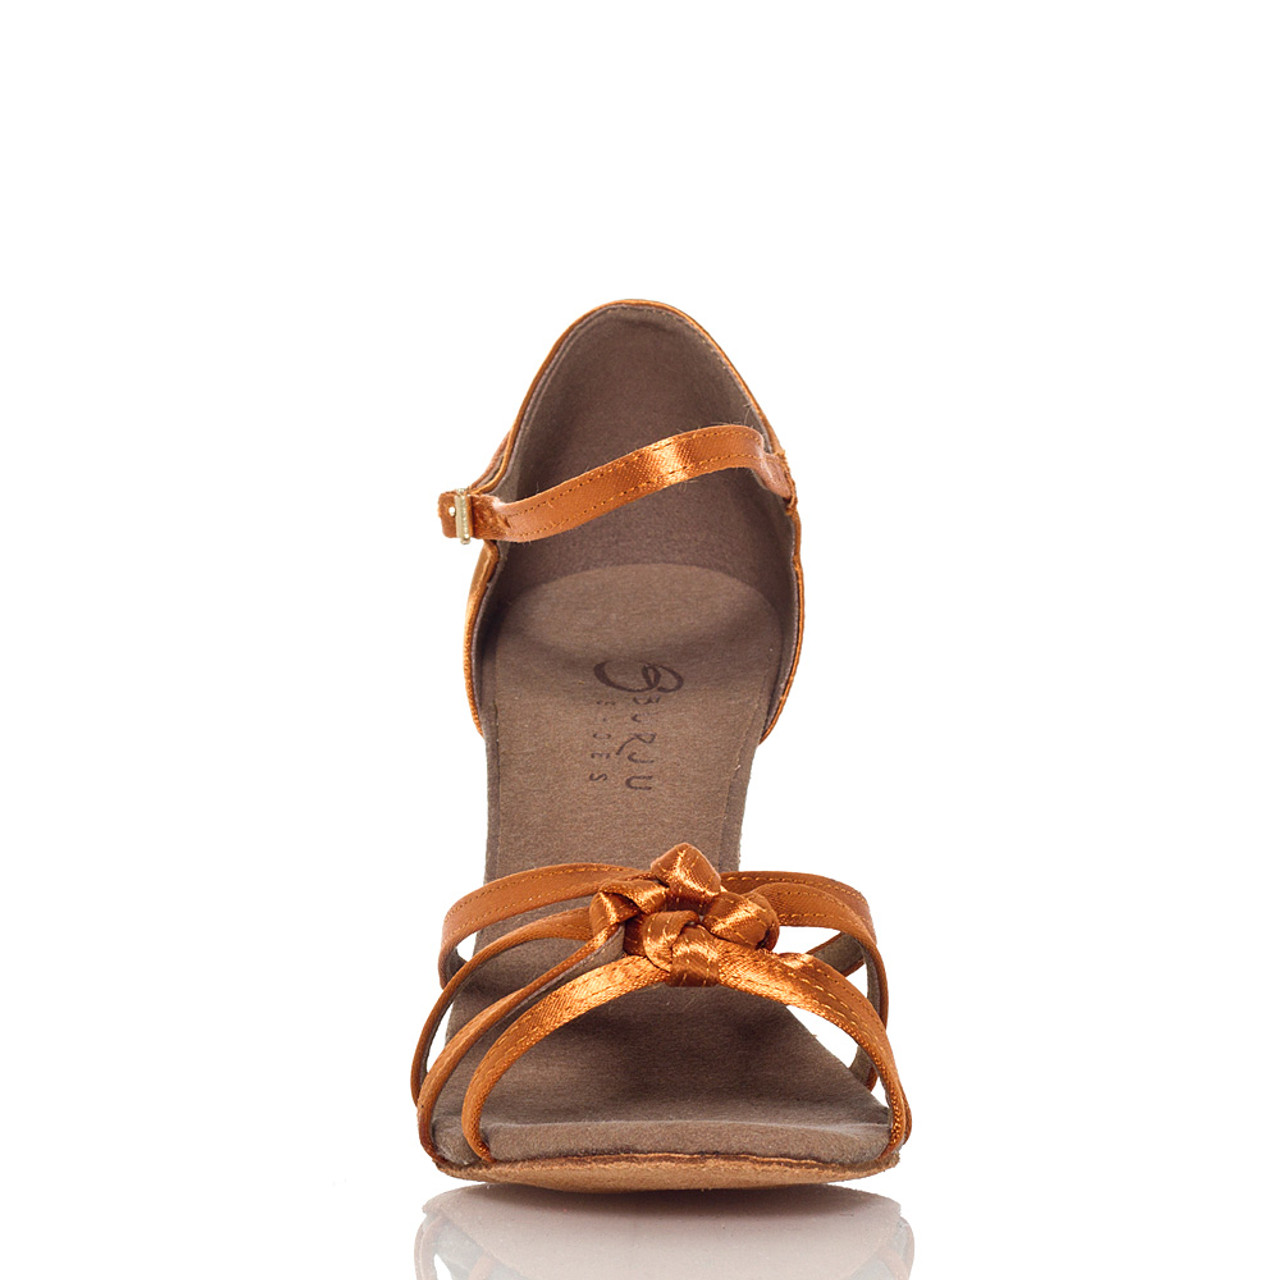 ab4e916a609 Leyla - Nude Strappy Knot Dance Shoe - 3 inch Flared Heels